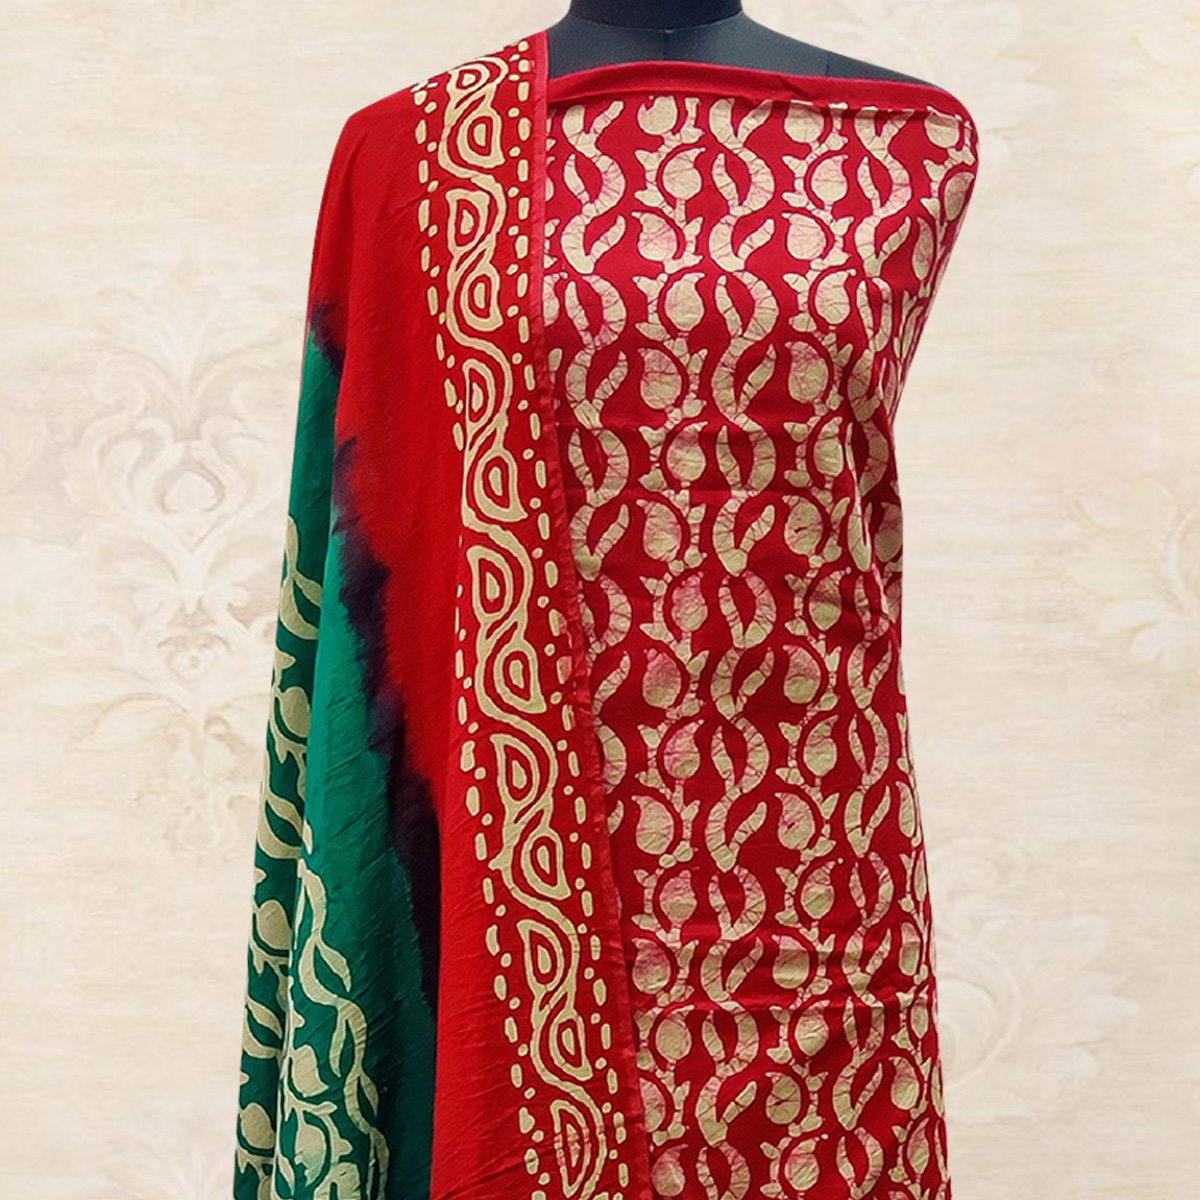 IRIS - Red Colored Casual Hand Wax Batik Printed Cotton Dress Material